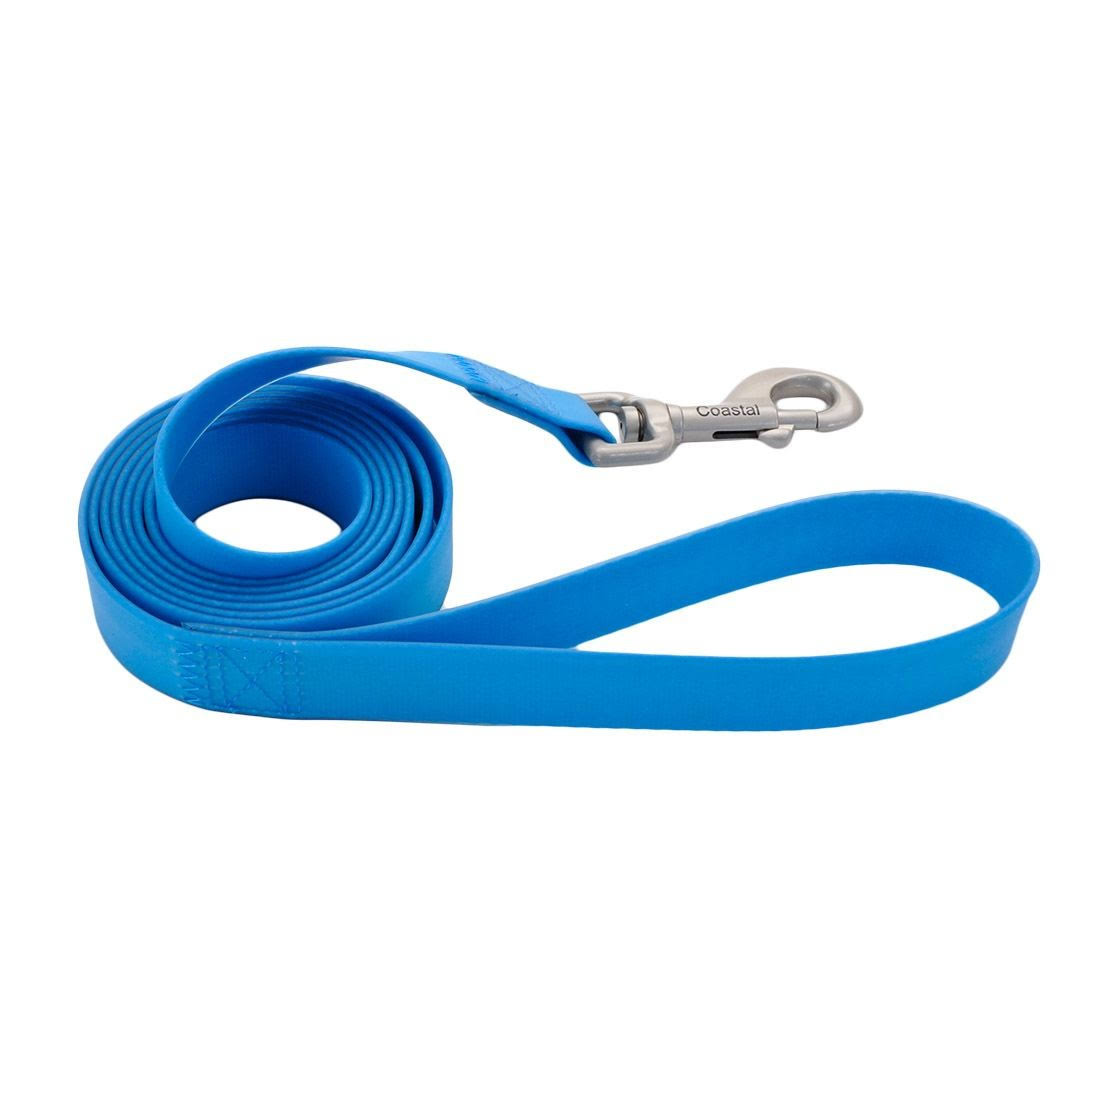 "Coastal Pet 3/4"" x 6' Pro Waterproof Leash"